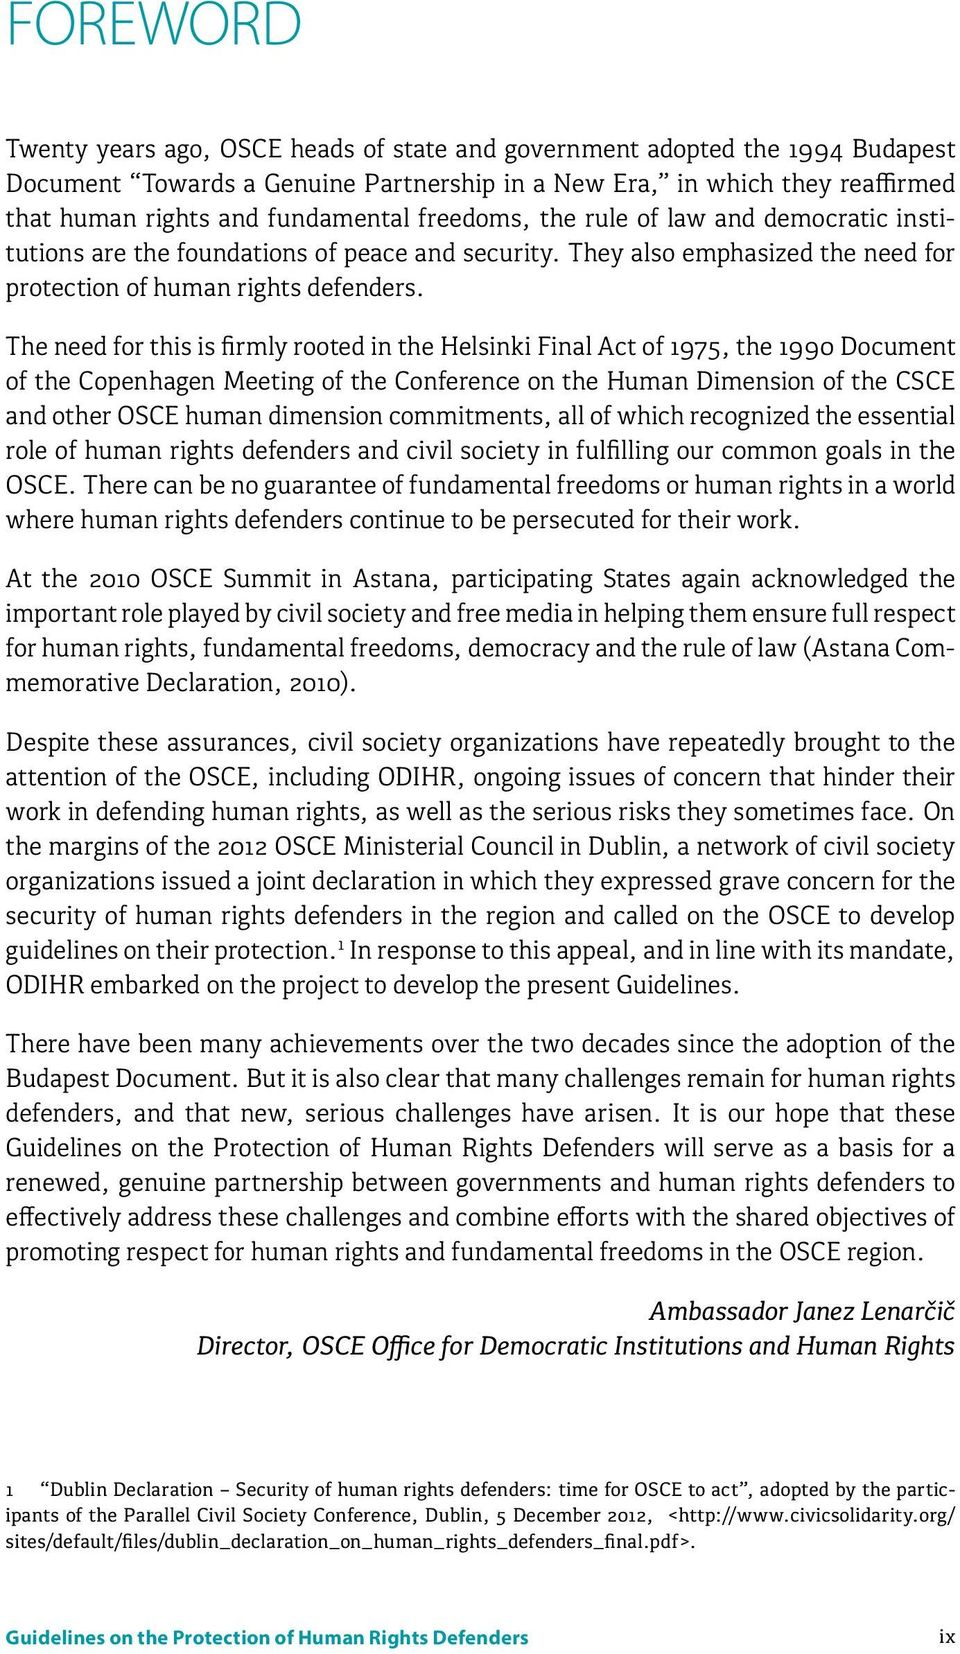 The need for this is firmly rooted in the Helsinki Final Act of 1975, the 1990 Document of the Copenhagen Meeting of the Conference on the Human Dimension of the CSCE and other OSCE human dimension